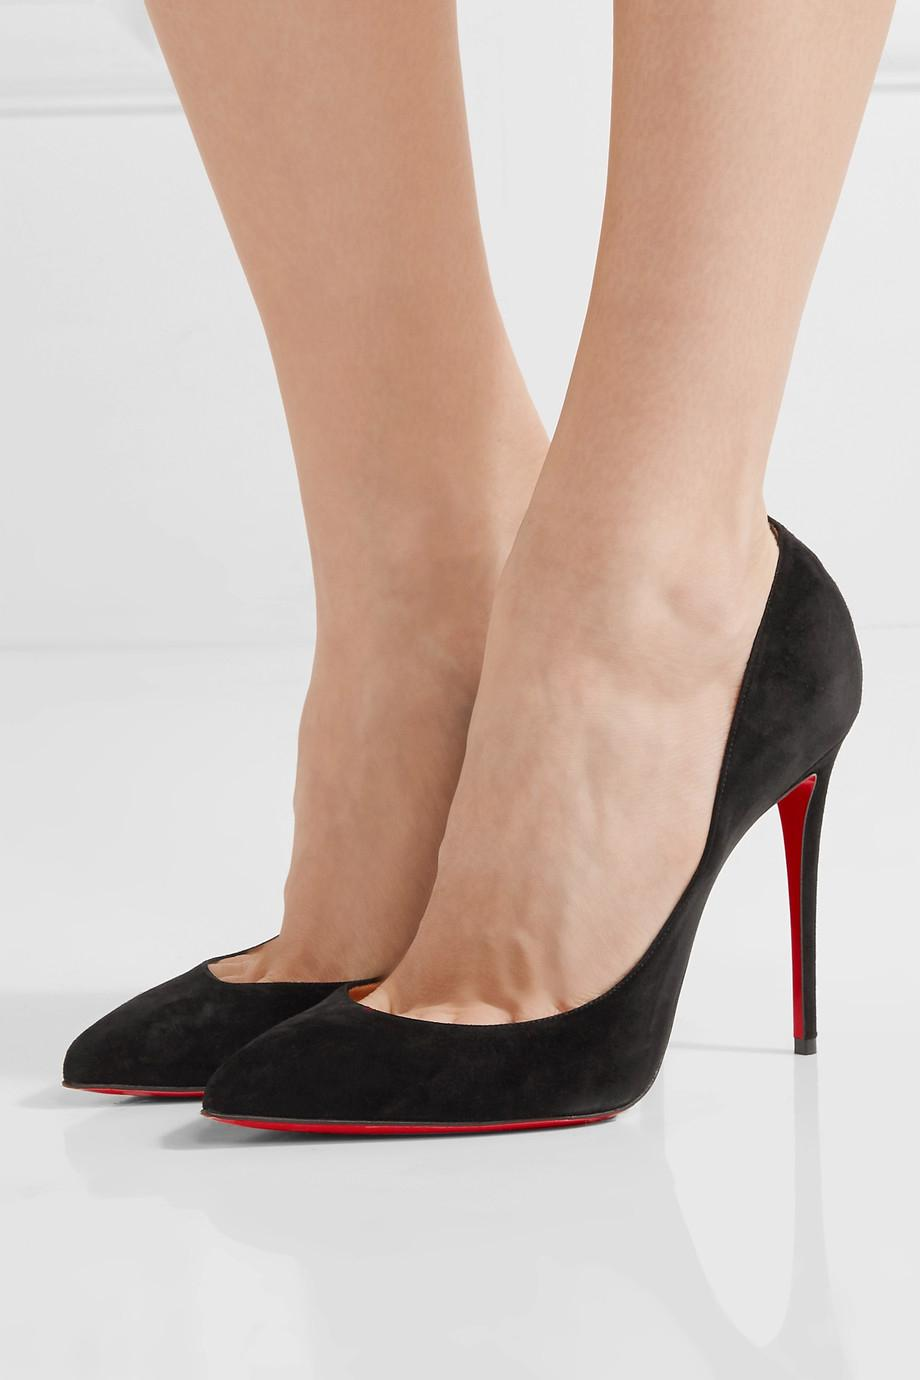 christian louboutin pigalle black 100mm